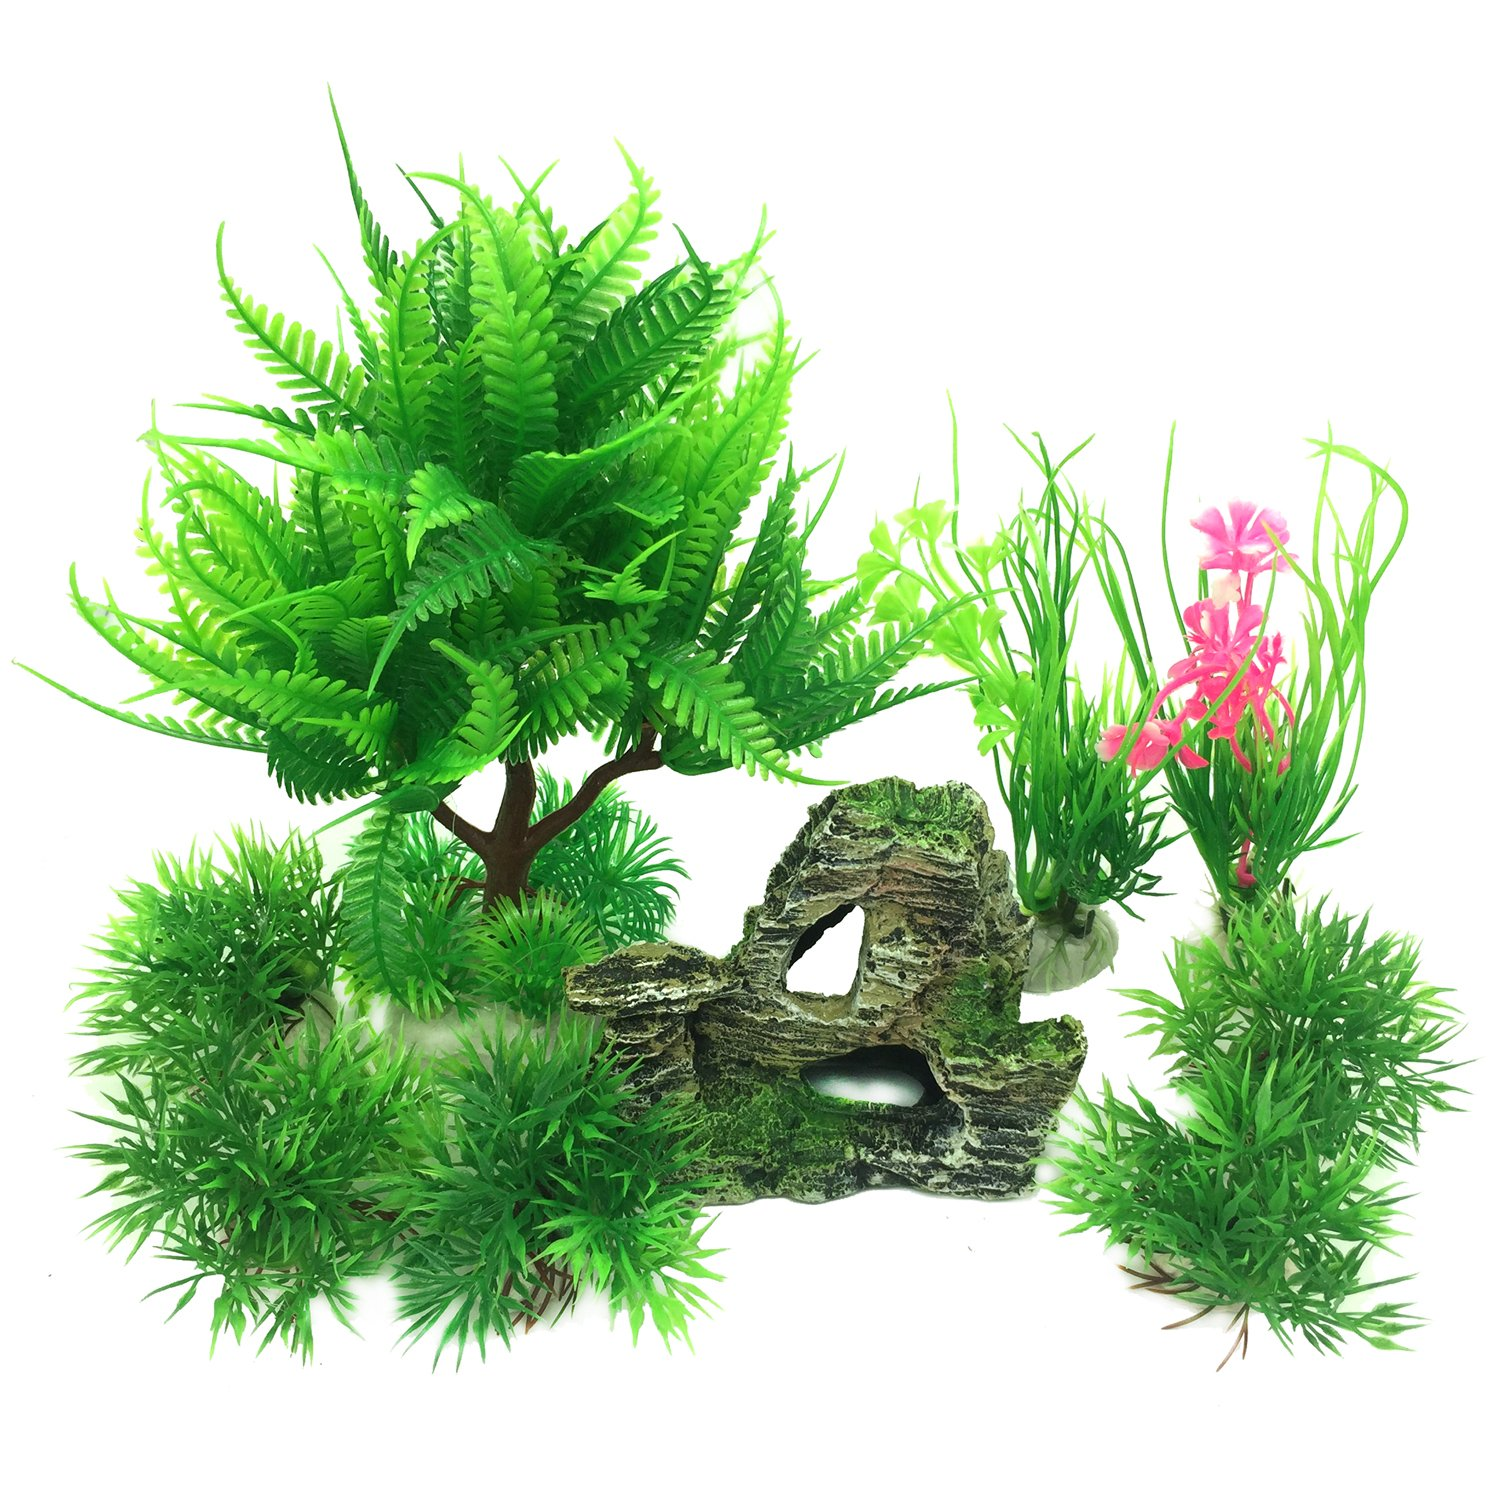 Pietypet Fish Tank Decorations Plants with Rockery view, 9pcs Green Aquarium Plants Plastic and Aquarium Mountain Reef Rock Cave Resin Fish Tank Ornament Decoration